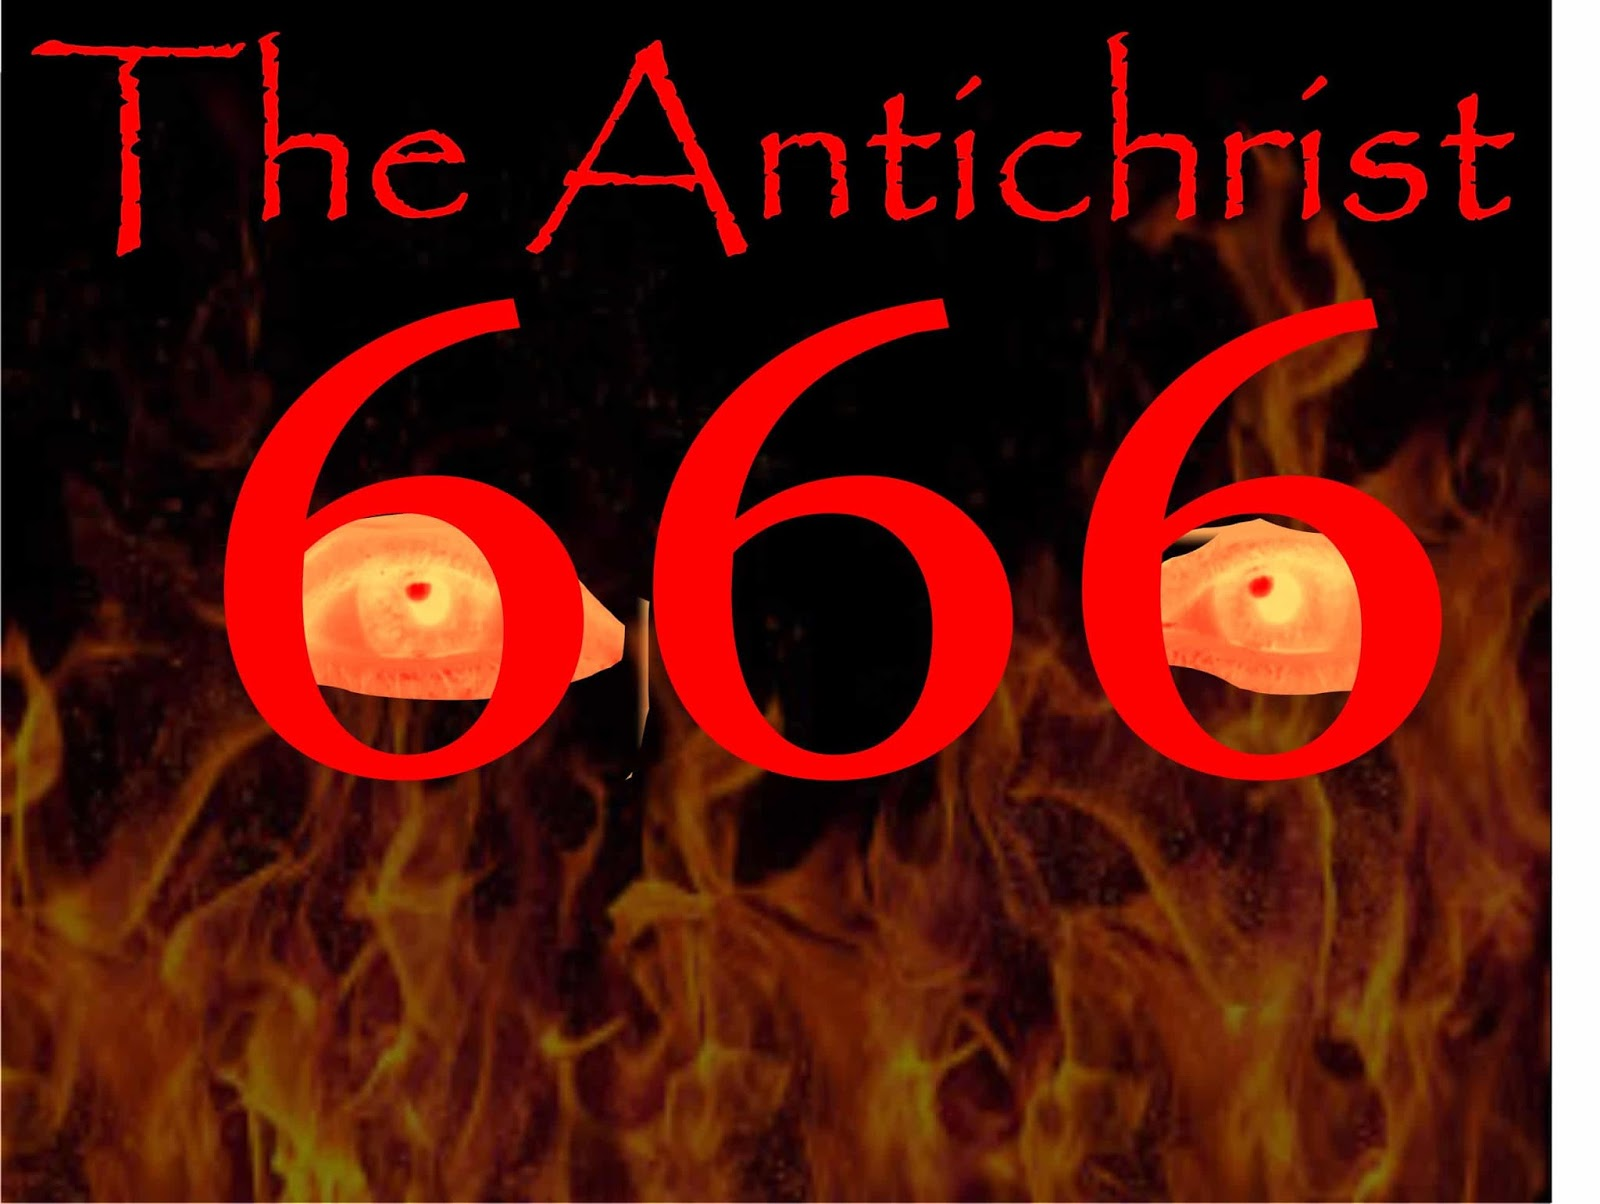 the antichrist I have heard many projections that the antichrist could be the pope, or the president, or some other prominent person will we know ahead of time who the .